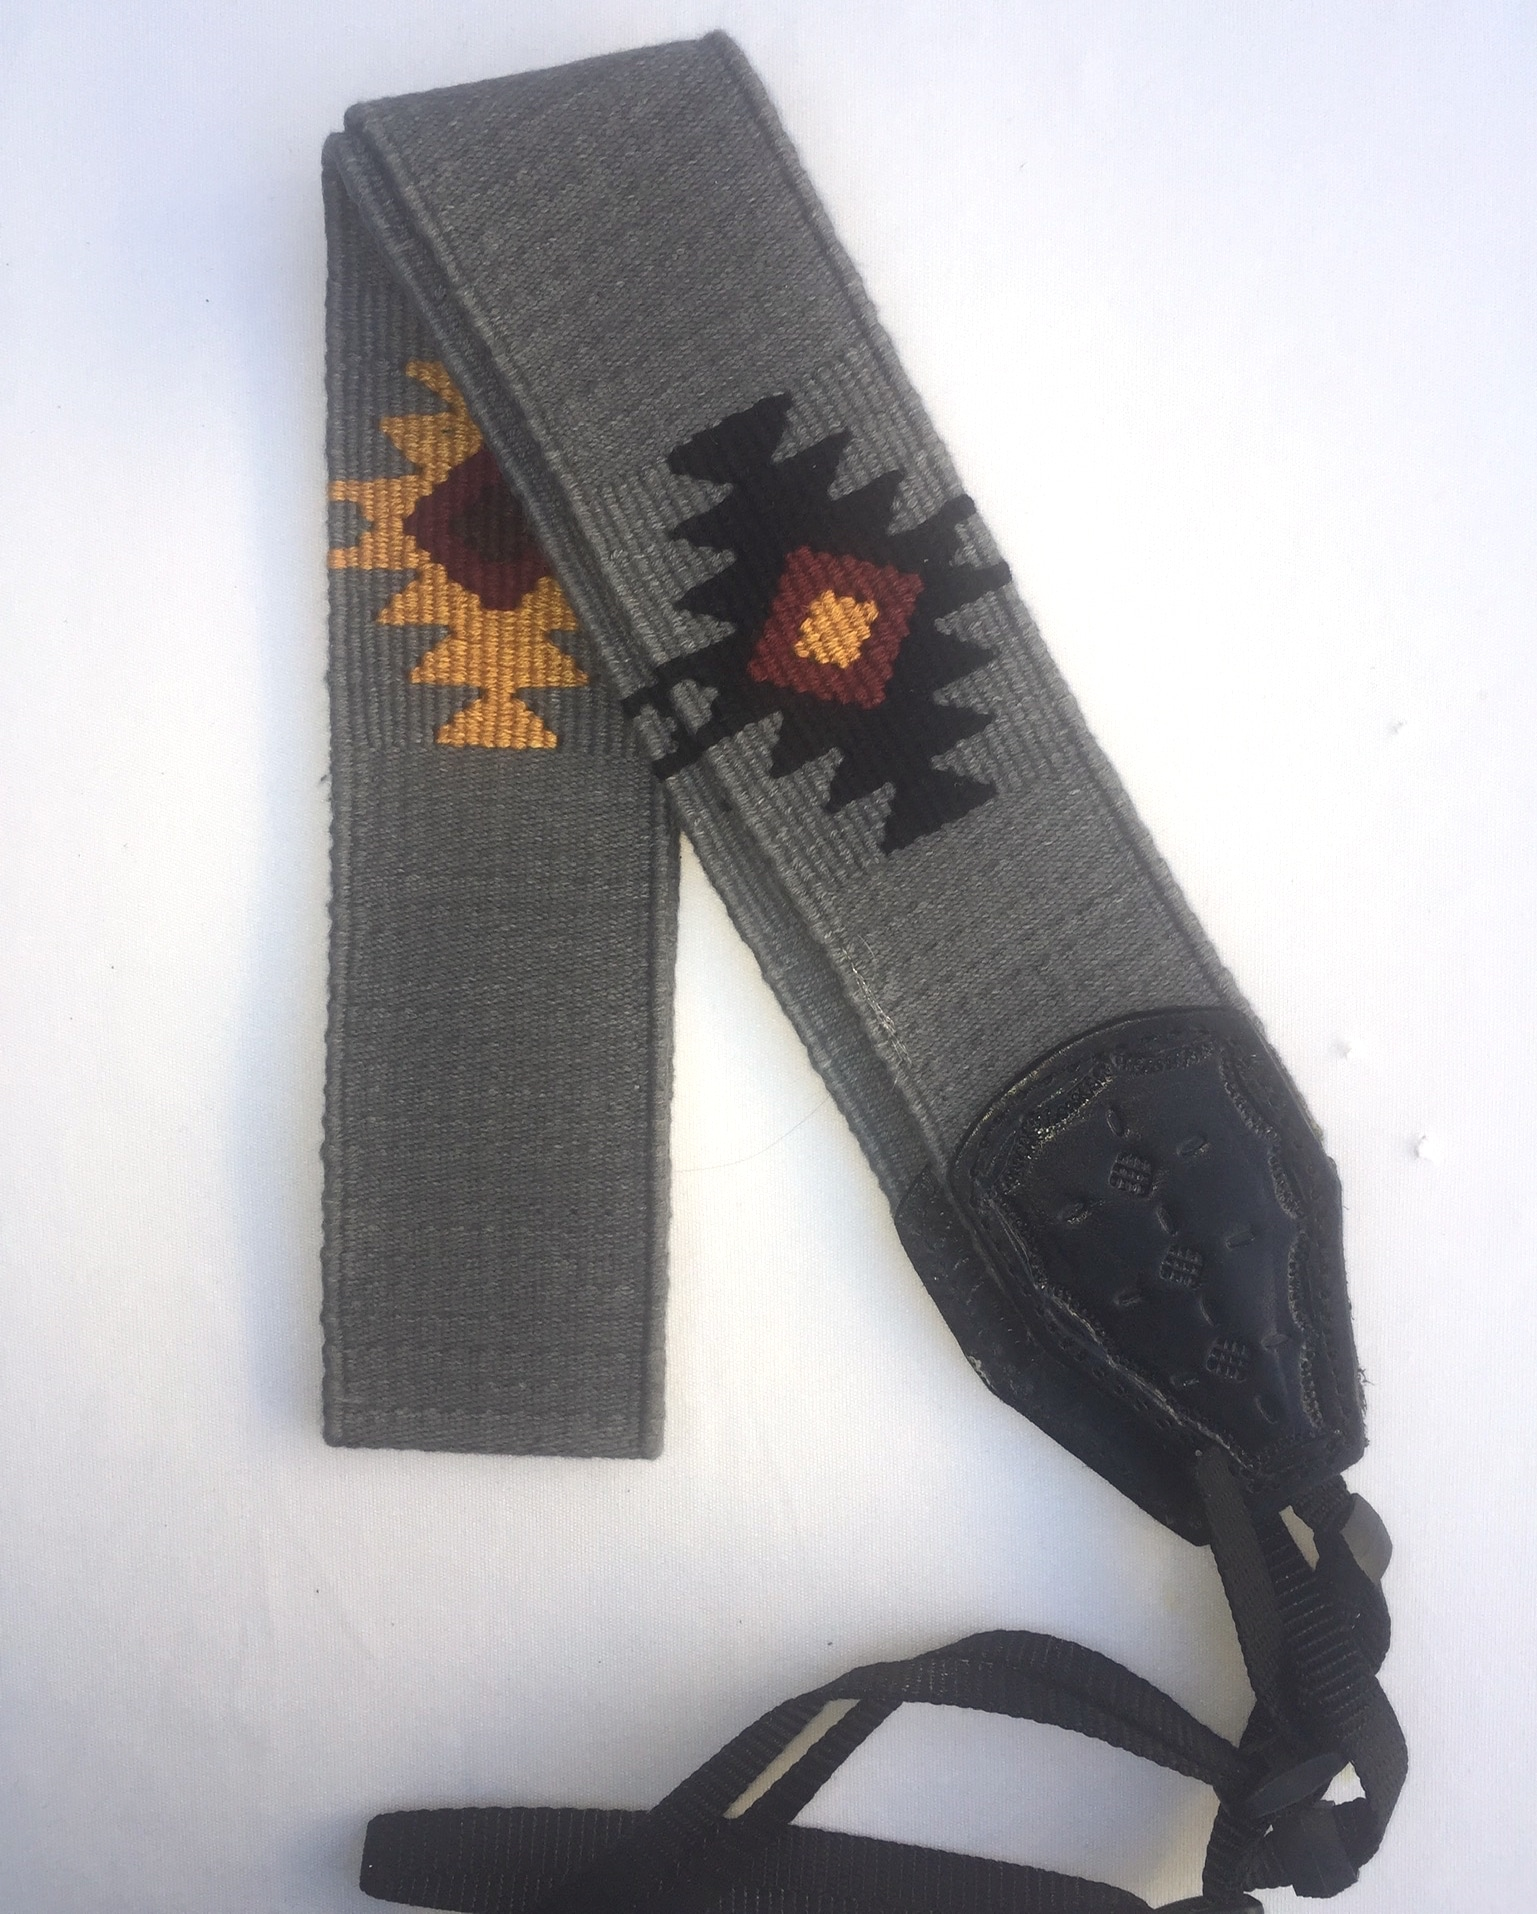 Handwoven Cotton and Leather Camera Strap - Gray with Geometric Diamond Pattern